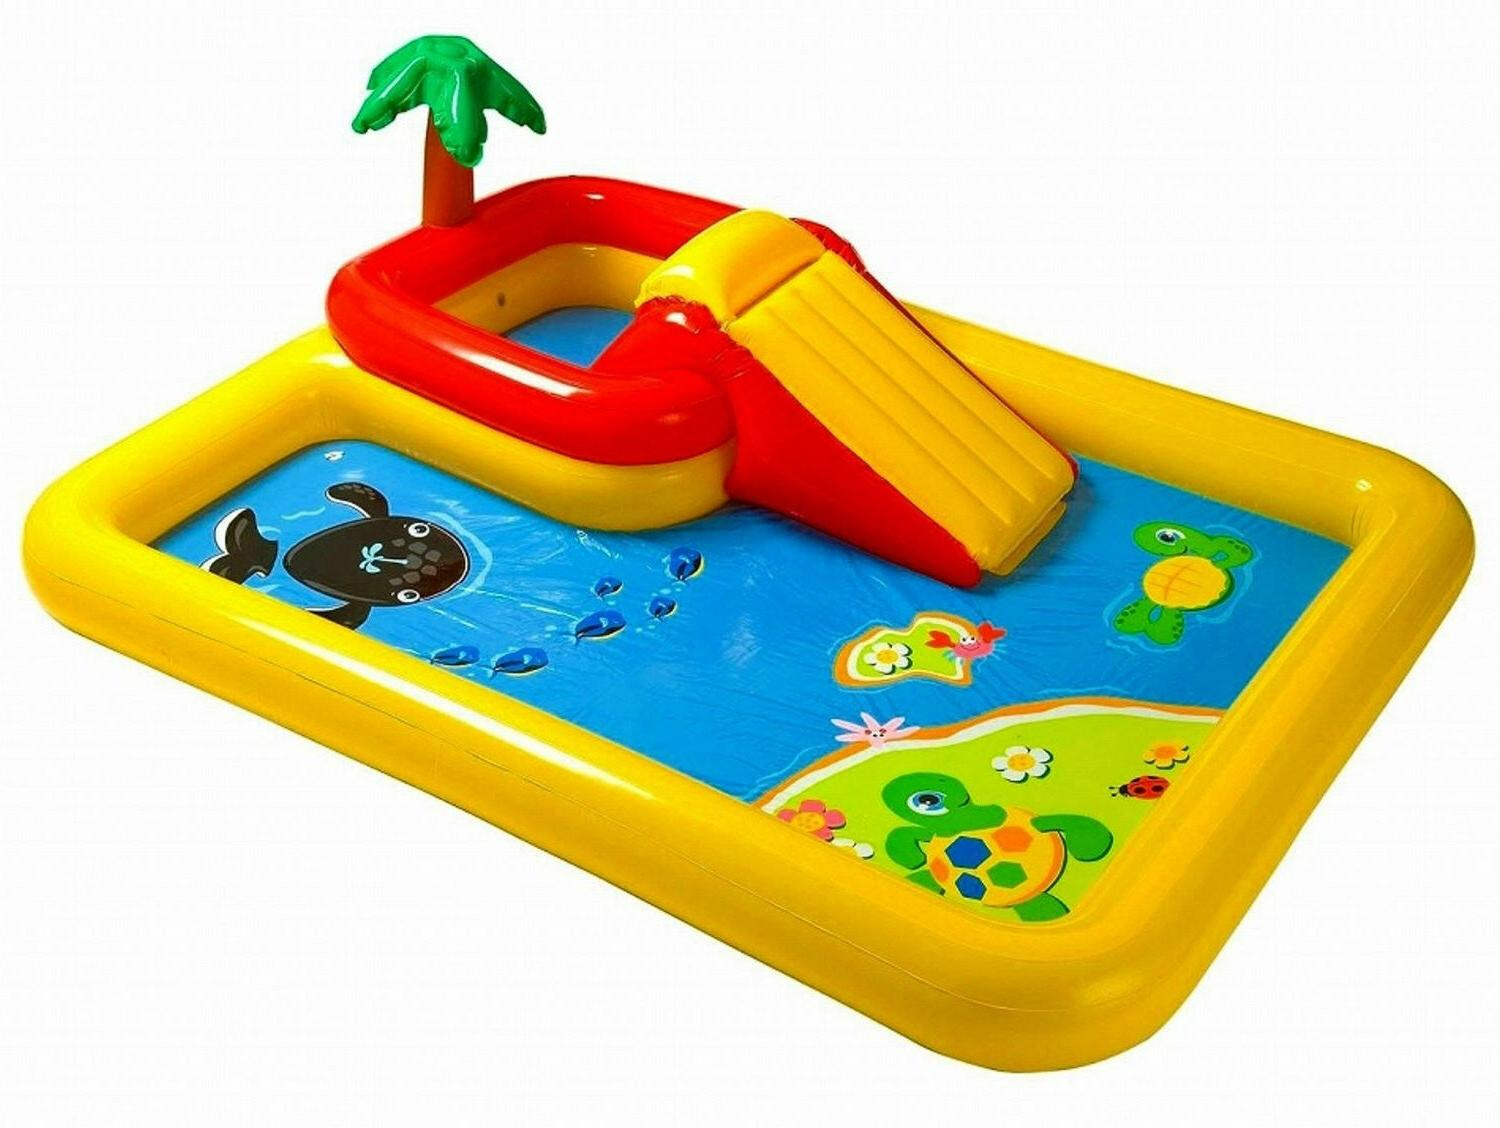 ocean play center inflatable outdoor yard childrens